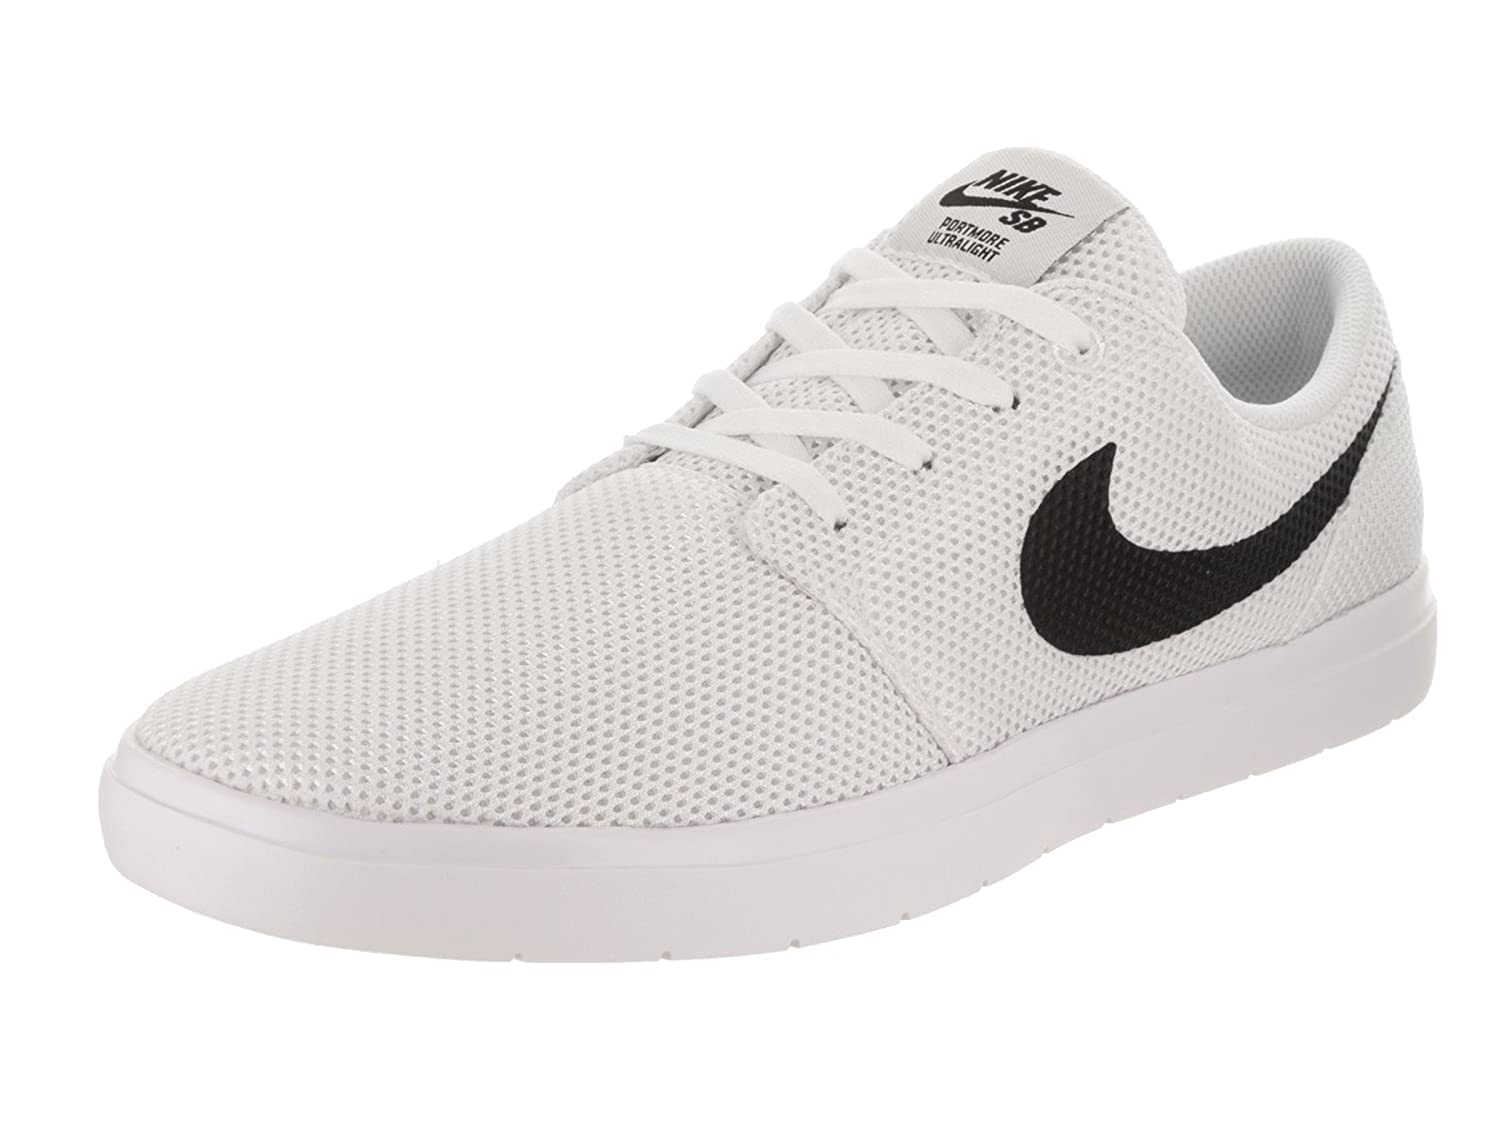 NIKE Men's SB Portmore II 7.5 Ultralight Skate Shoe B004B5E49I 7.5 II D(M) US|White/Black/Track Red f519c8